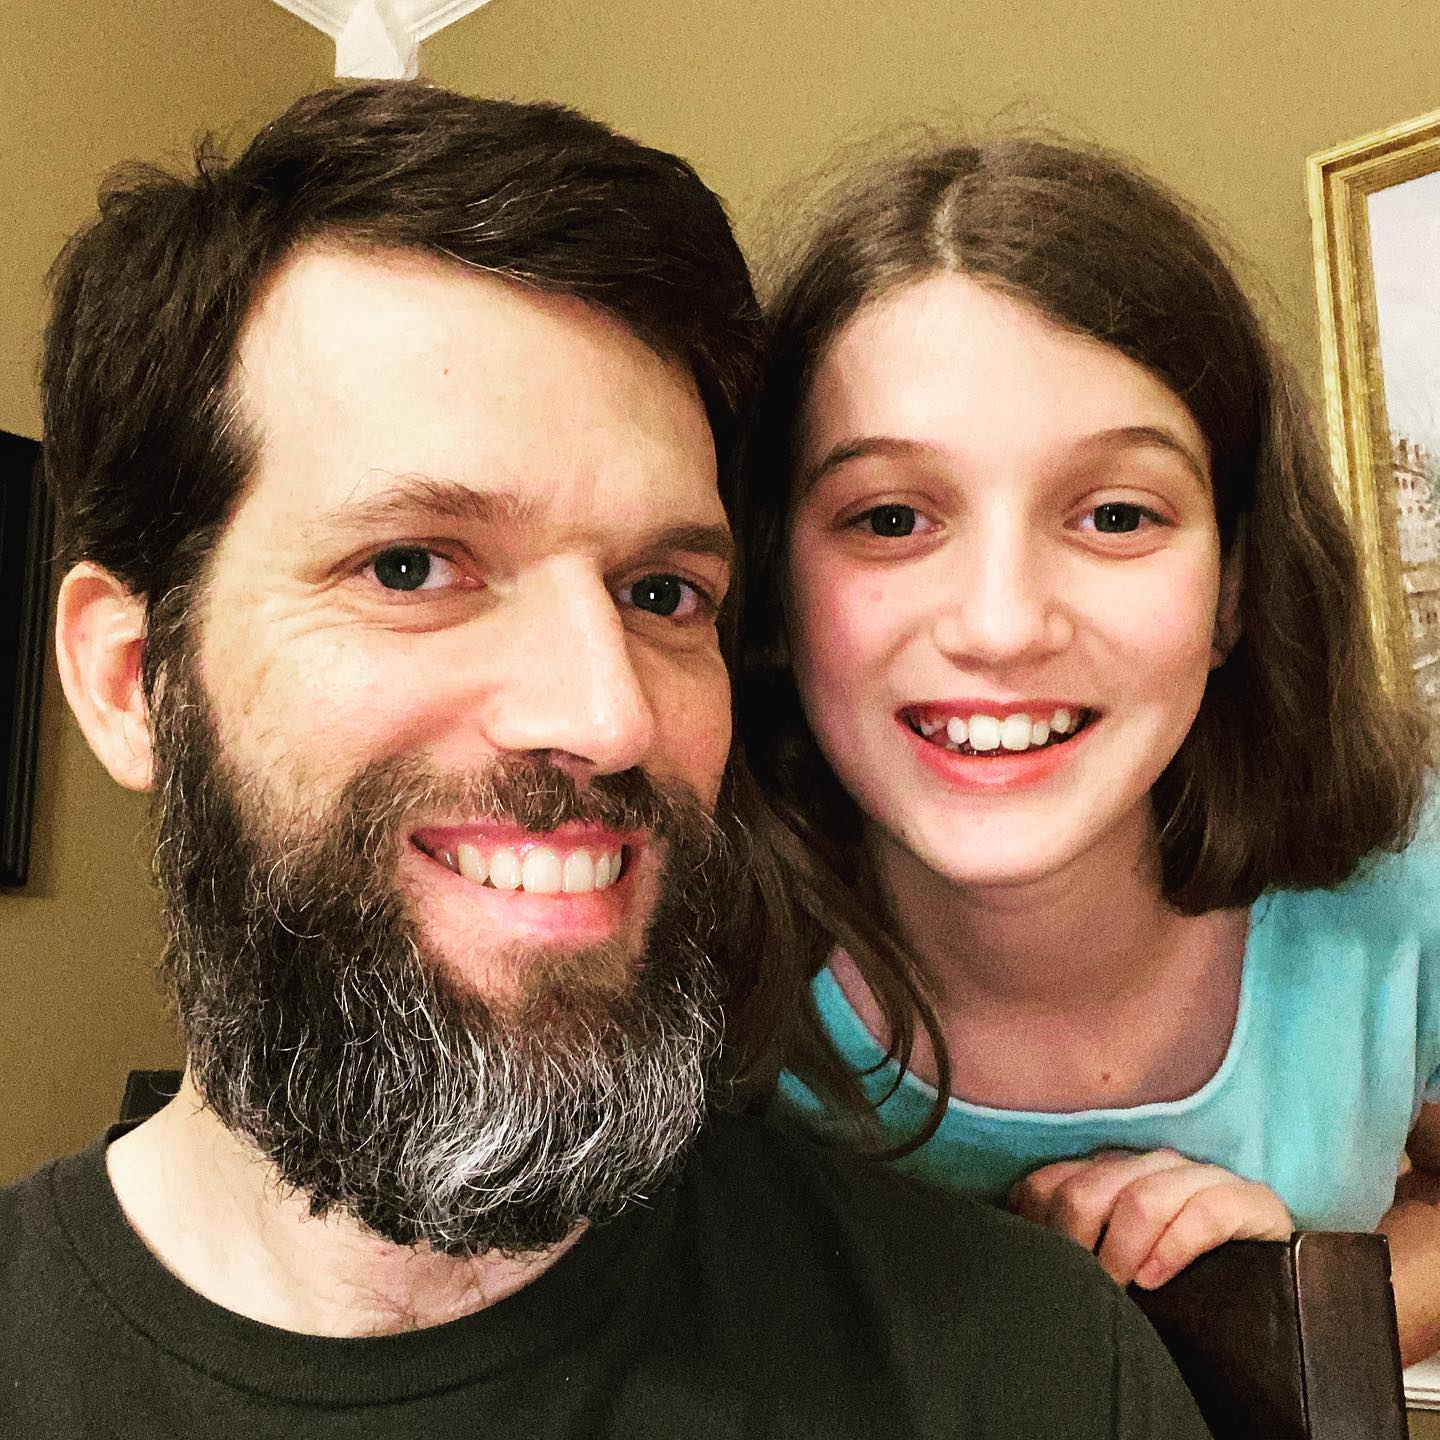 Self-quarantine beard update - Day 100. This will likely be the last update before I trim it for the first time. #family #beard